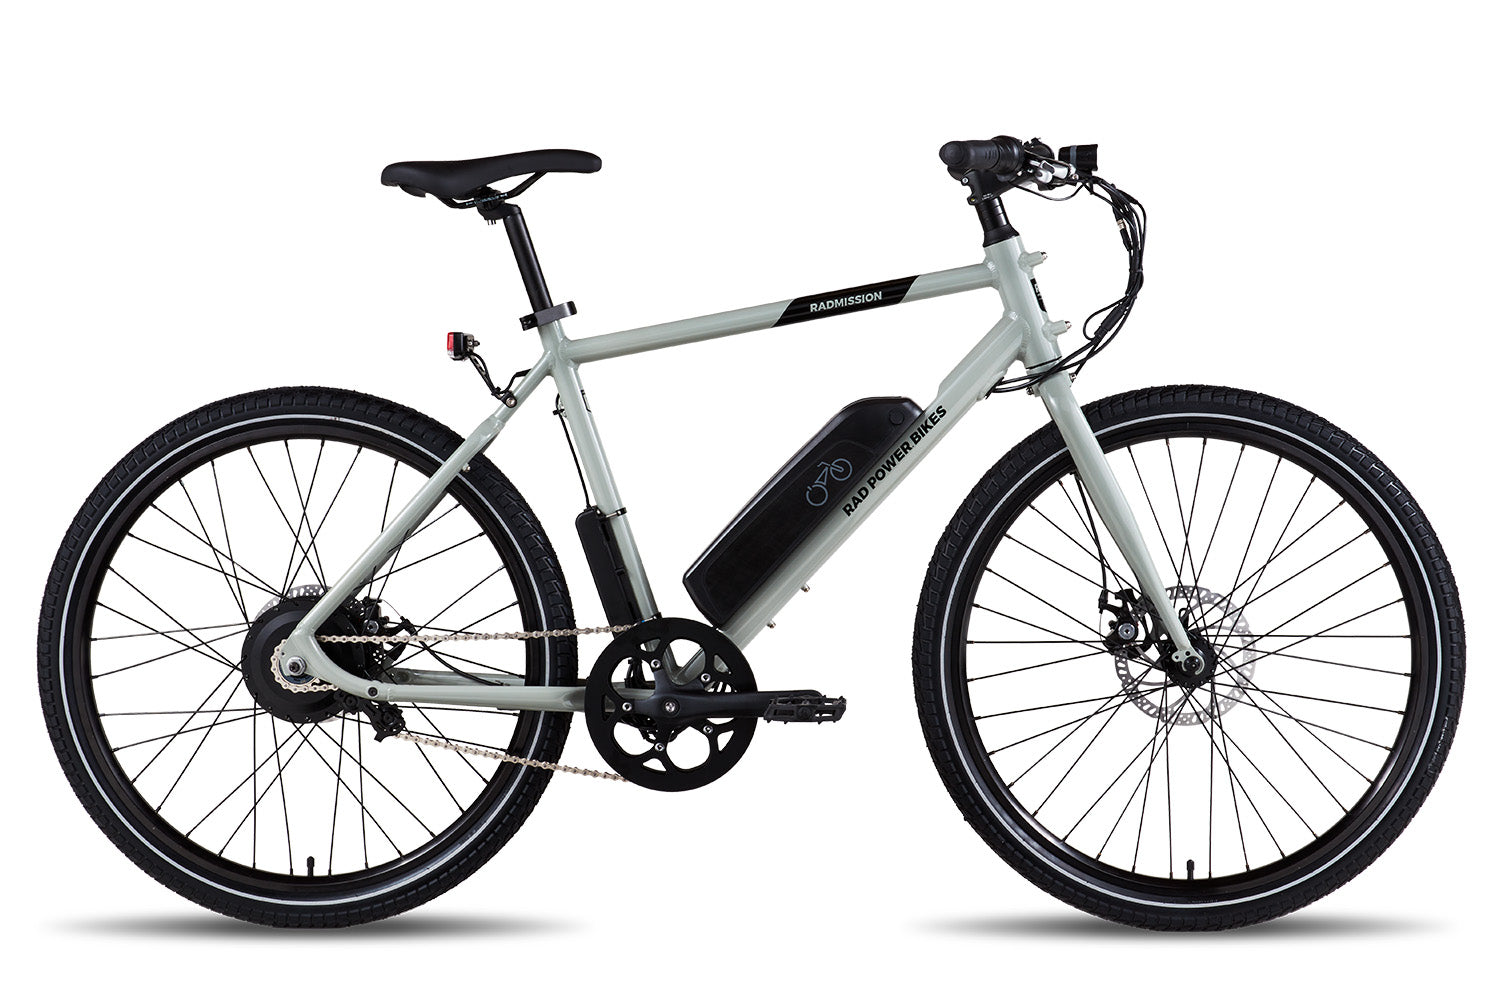 RadMission 1 Electric Metro Bike - Gray, High-Step